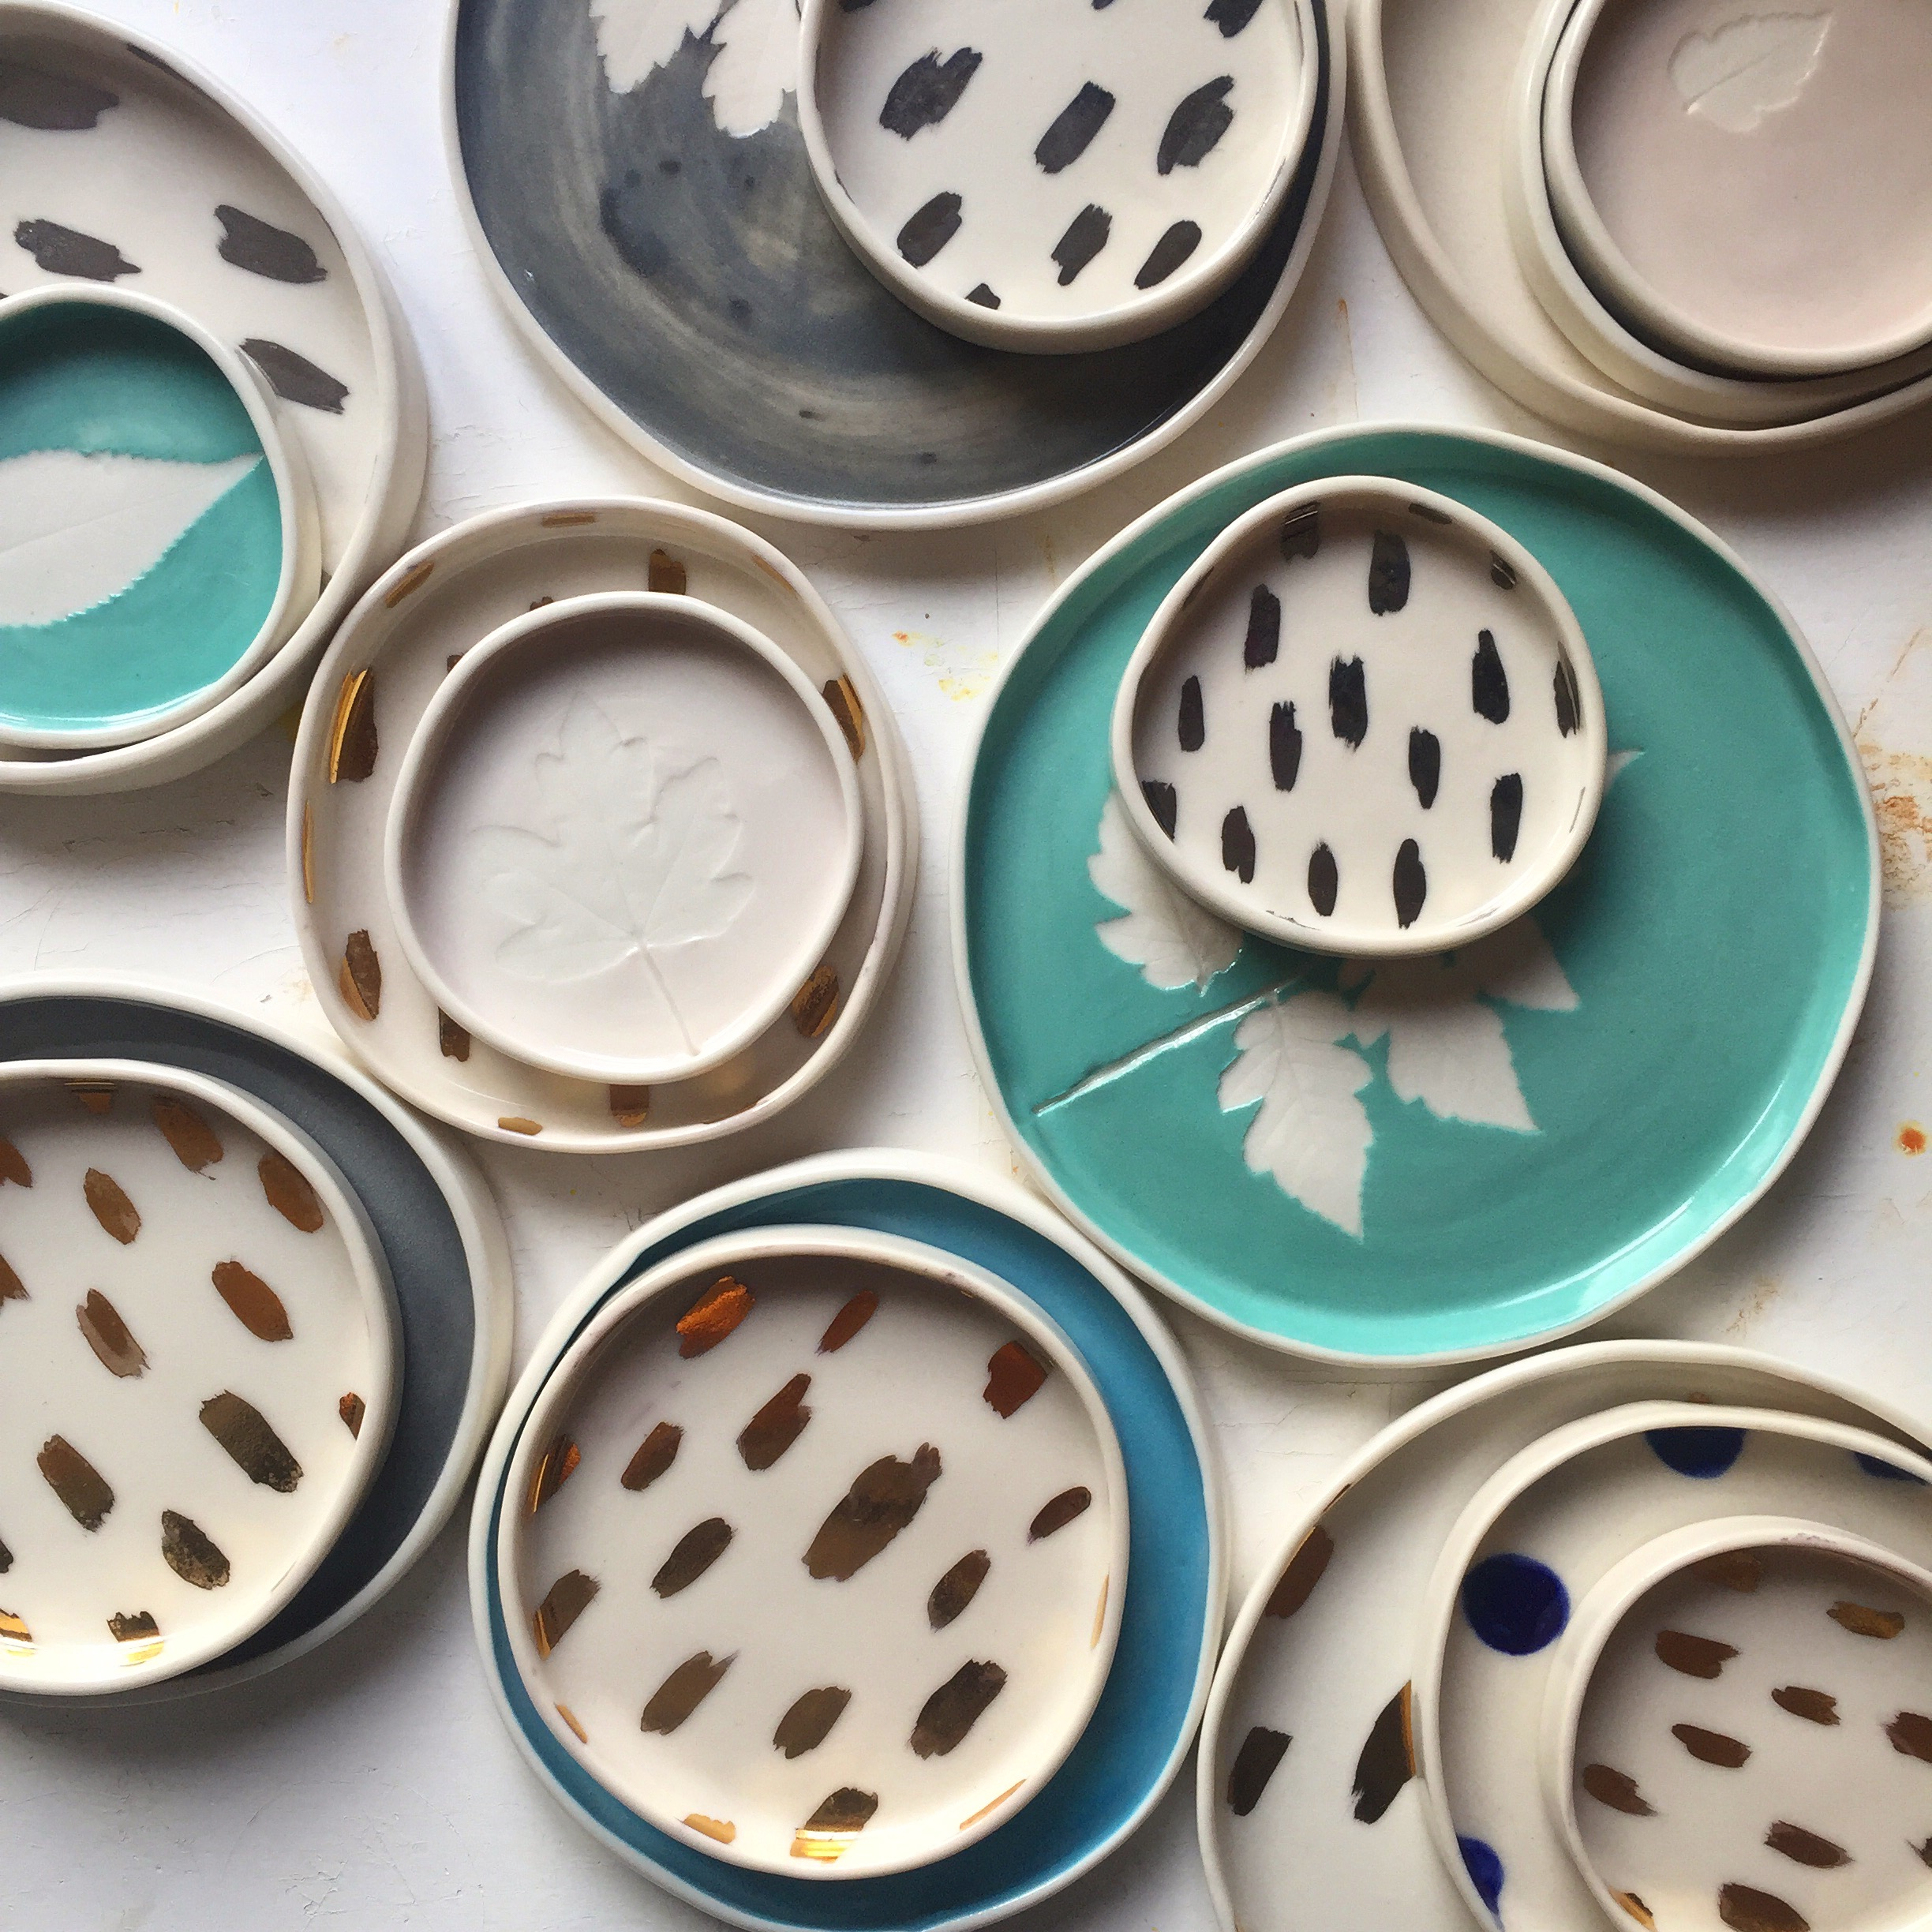 Various Handmade Porcelain Dishes